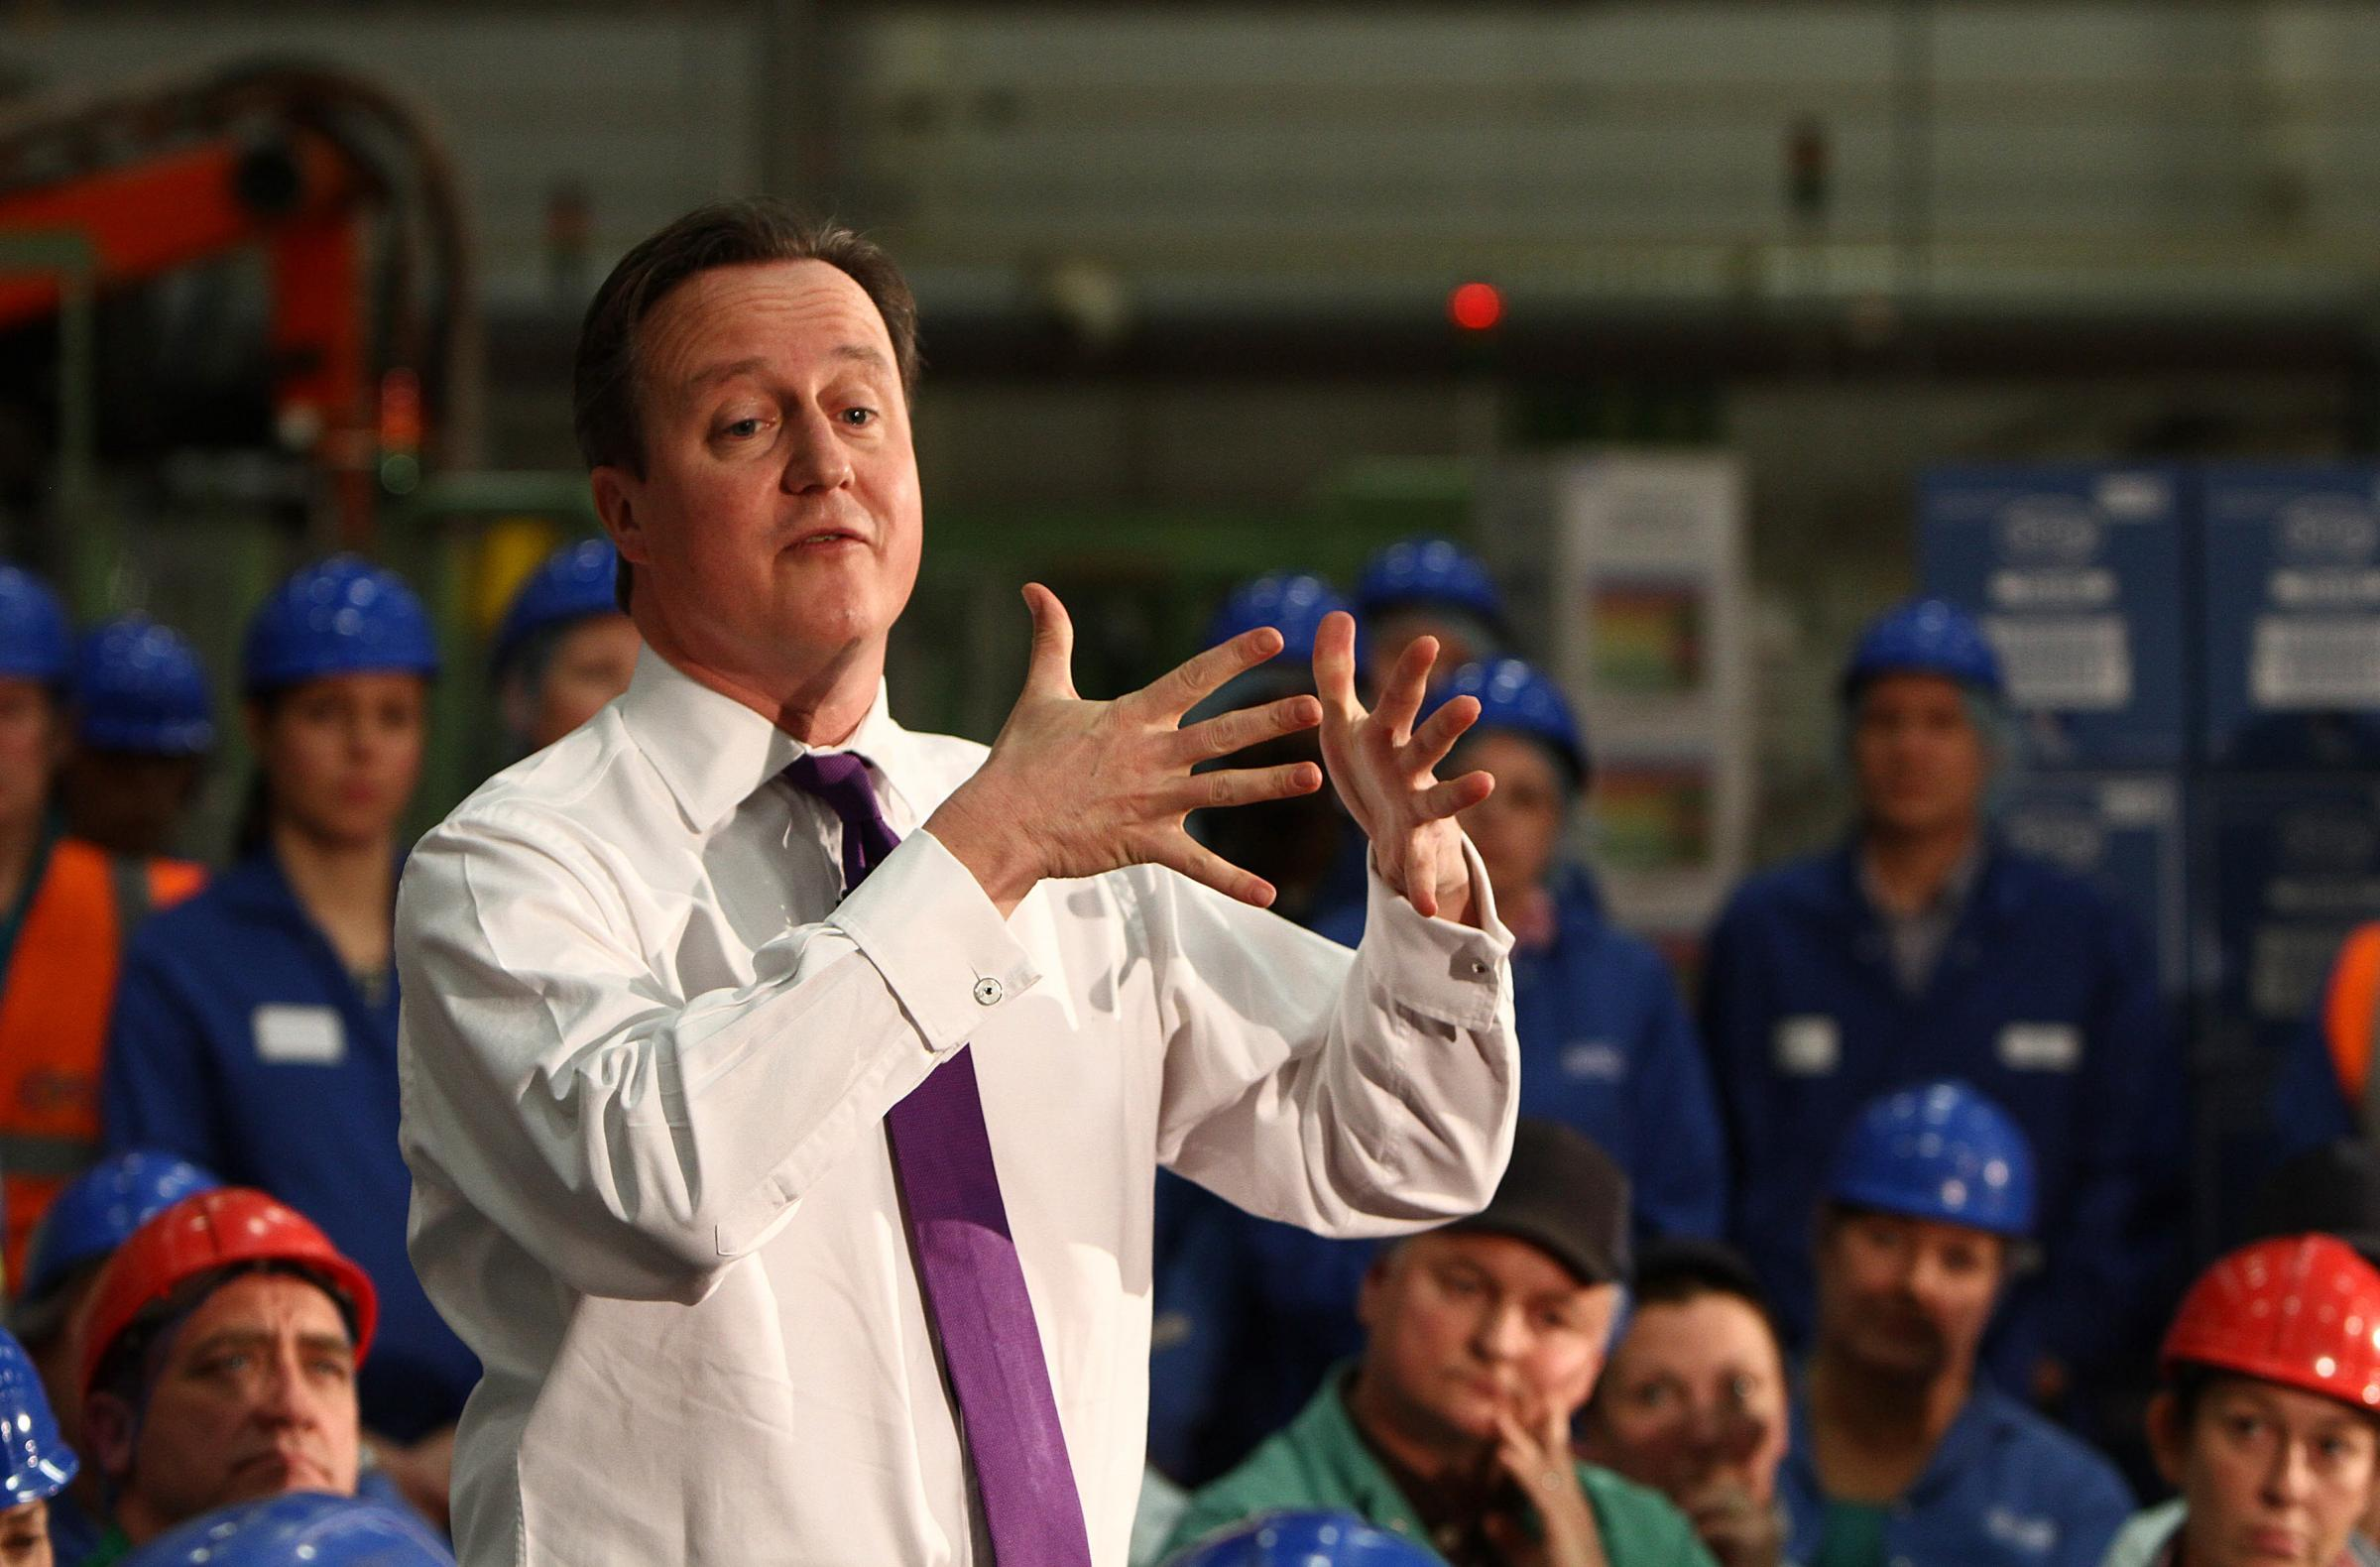 TRADE DEAL: Prime Minister David Cameron, pictured during a visit to Tetley's tea factory, in Eaglescliffe, near Stockton, has described the Transatlantic Trade and Investment Partnership as a once in a lifetime opportunity